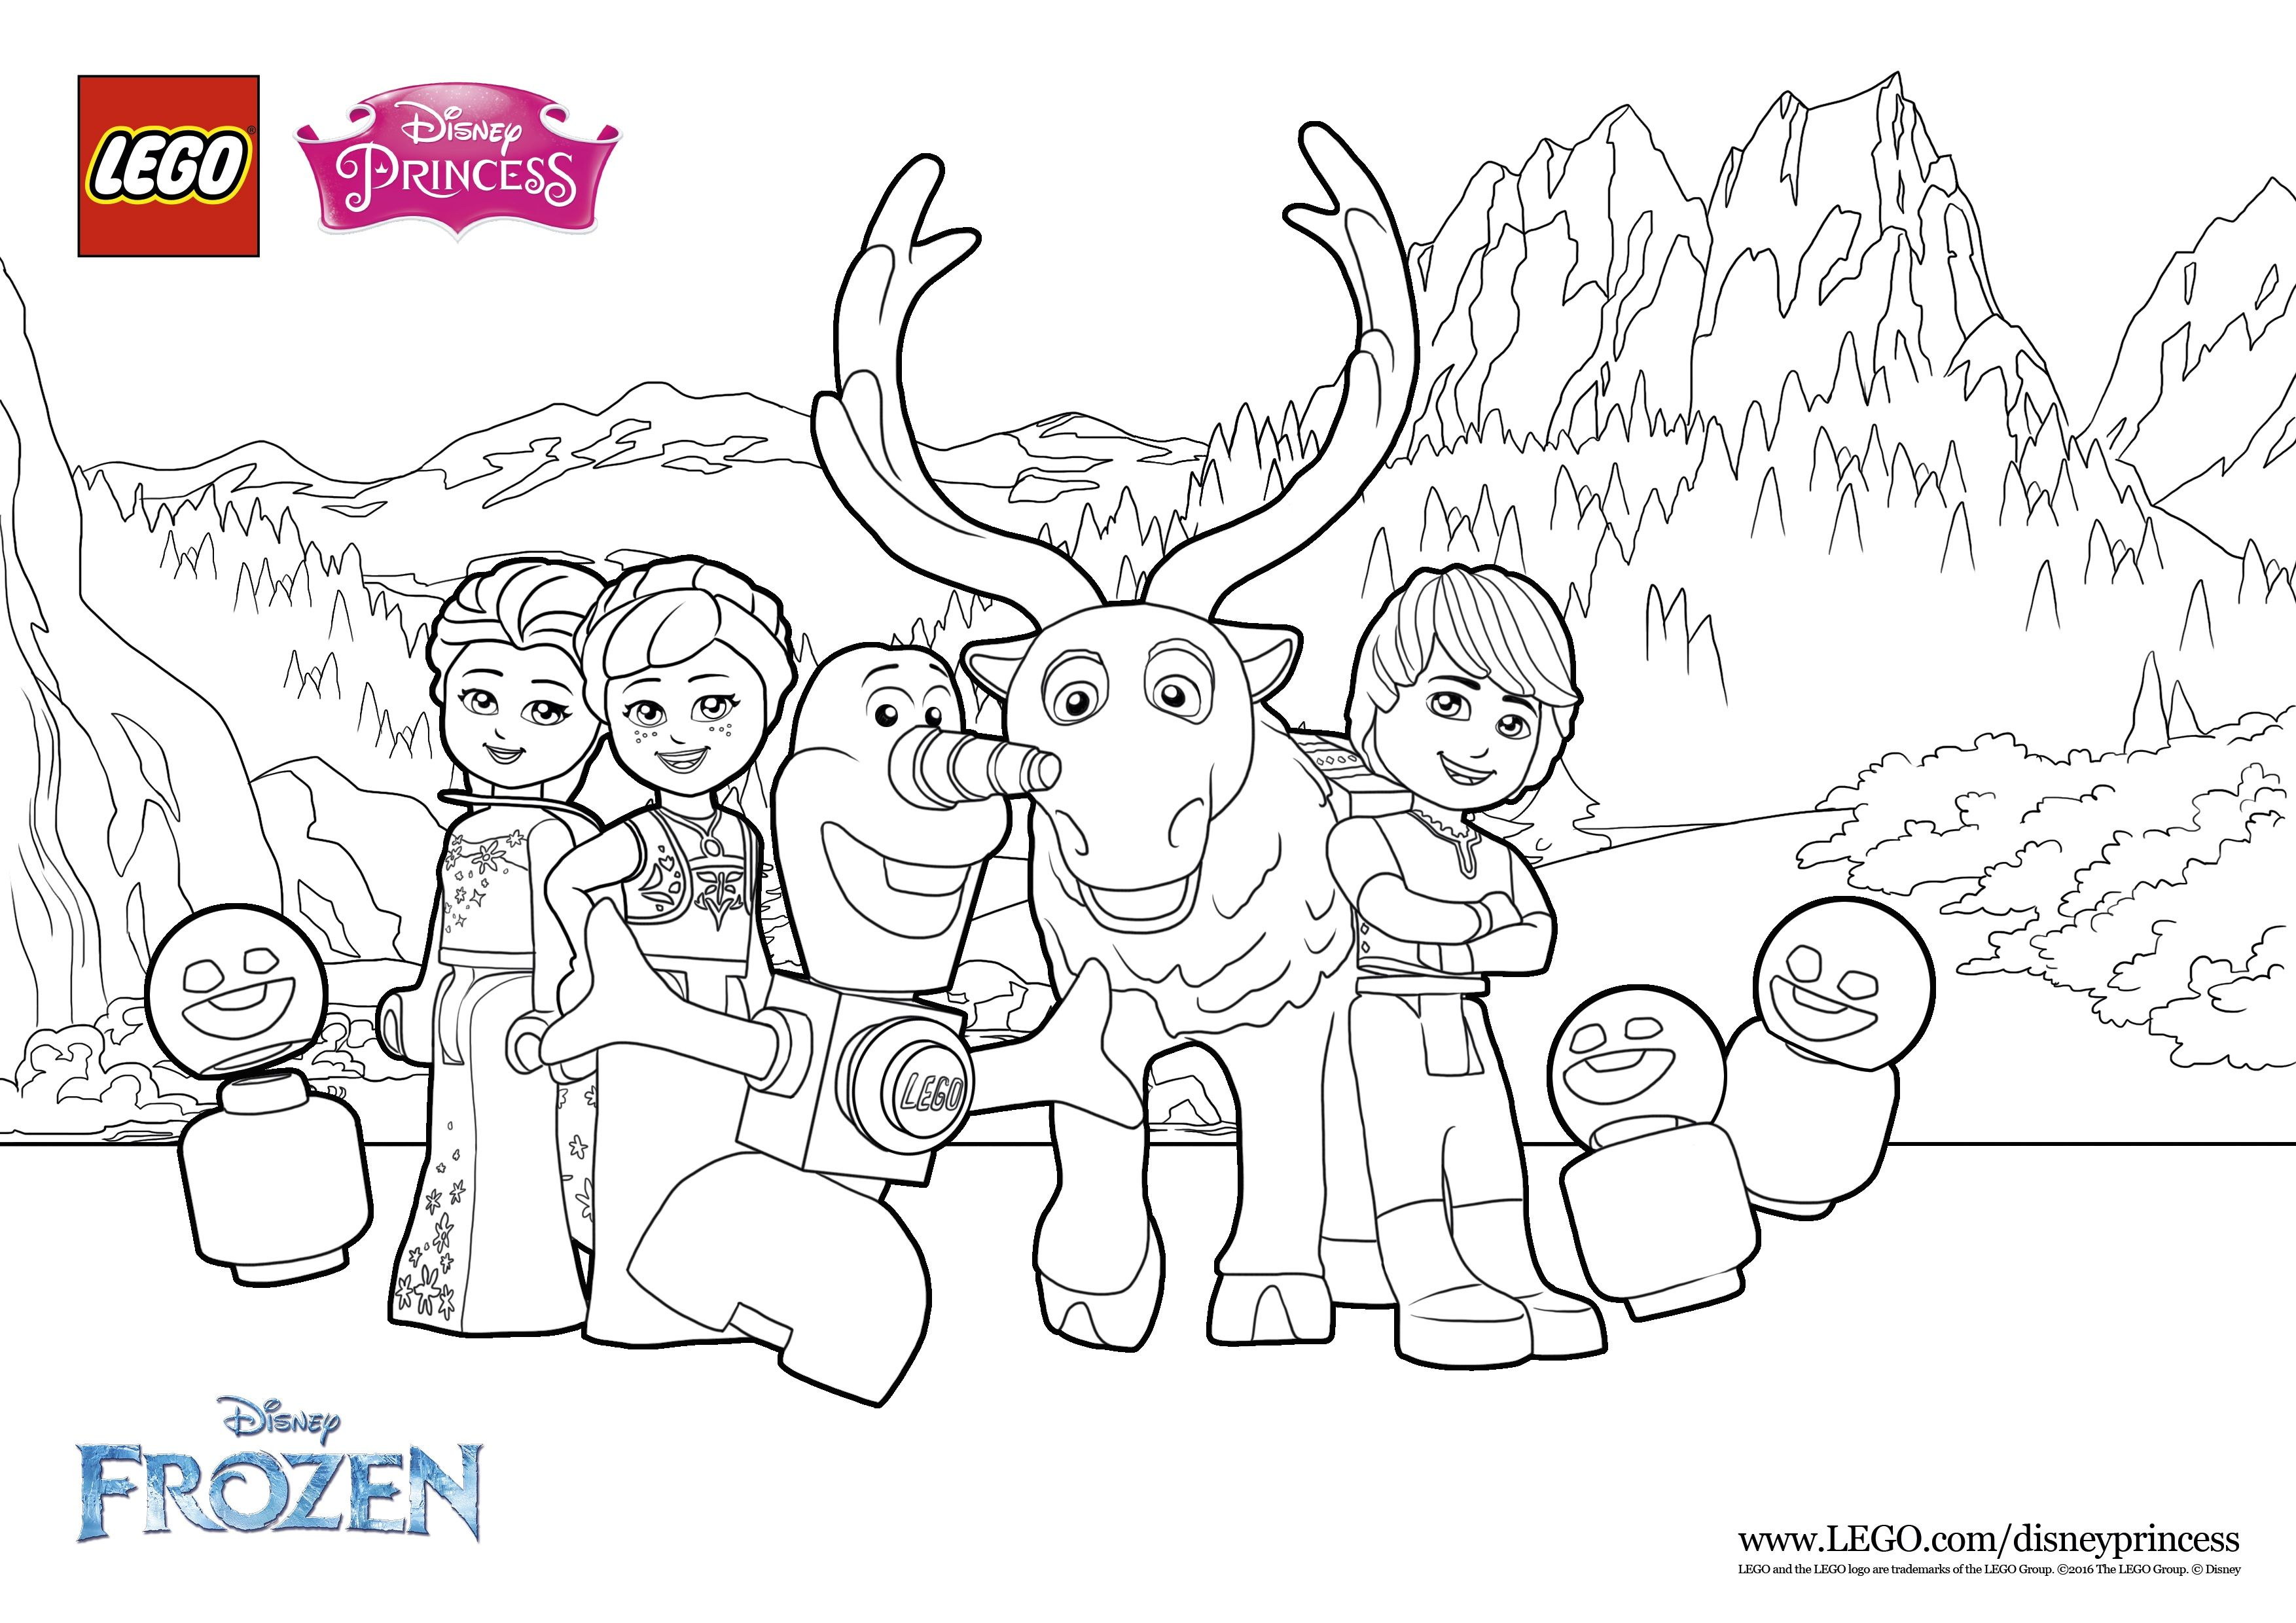 And More Coloring Fun With Olaf His Friends For You To Print See The Funny Video On Lego Lego Coloring Pages Lego Movie Coloring Pages Frozen Coloring Pages